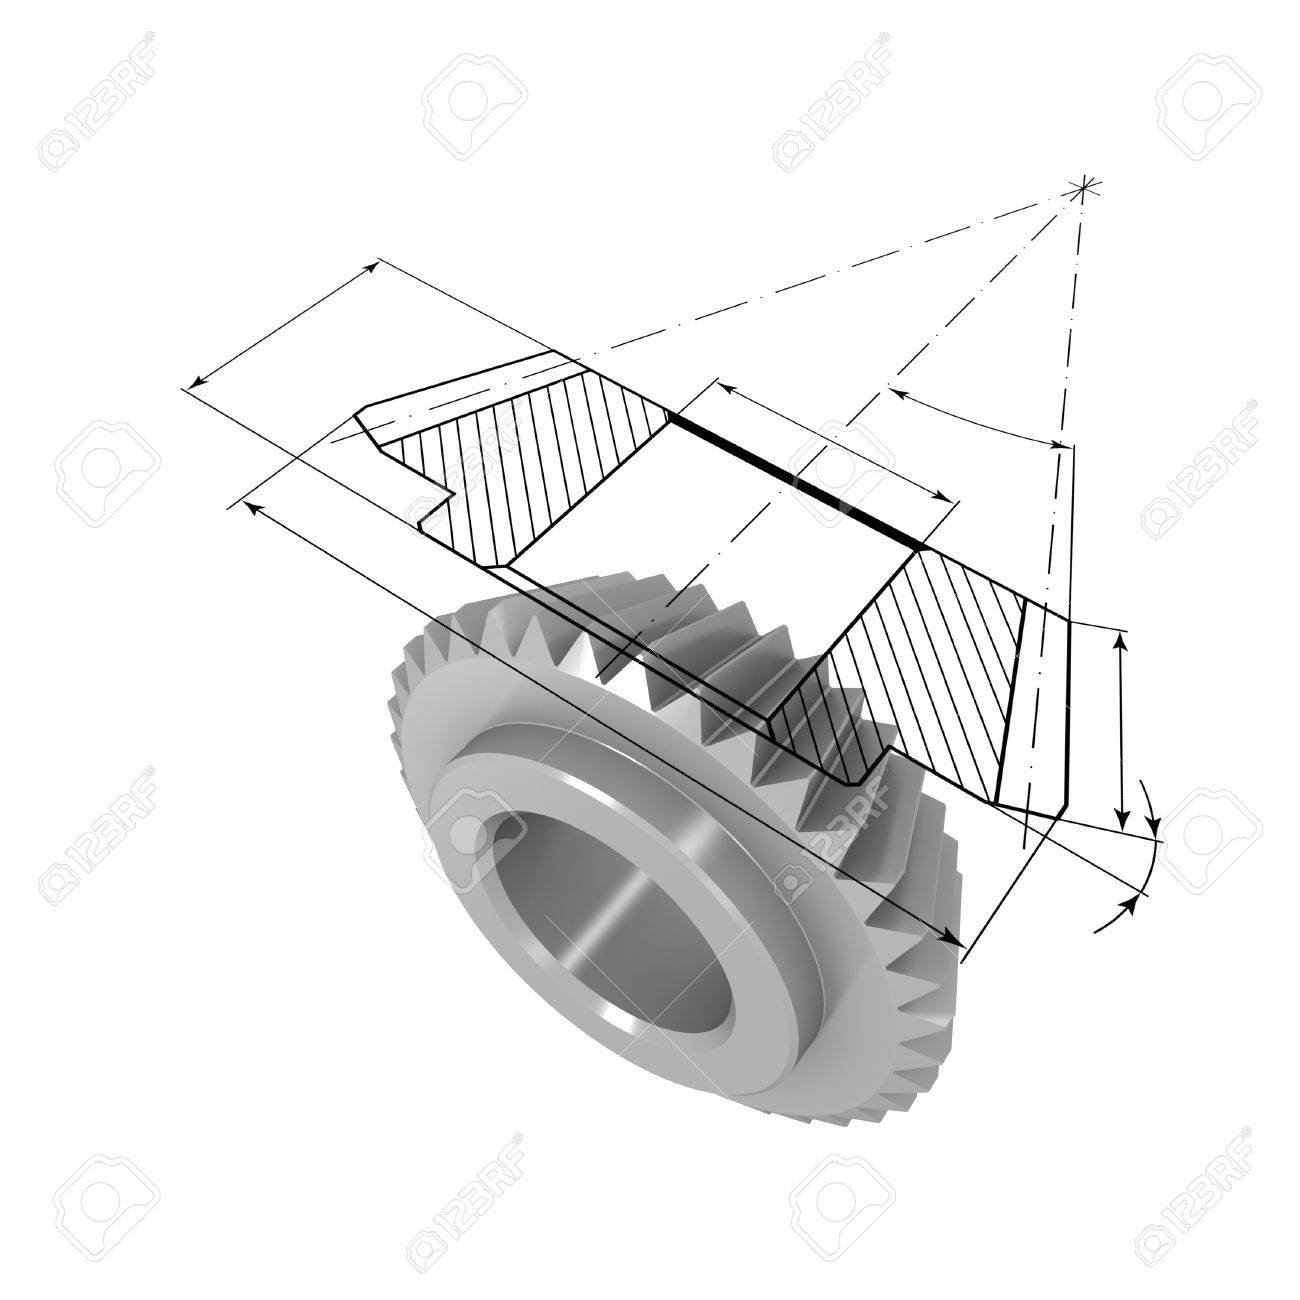 Three-dimensional model of bevel gear. On top of the model is projected onto the drawing. - 7788835